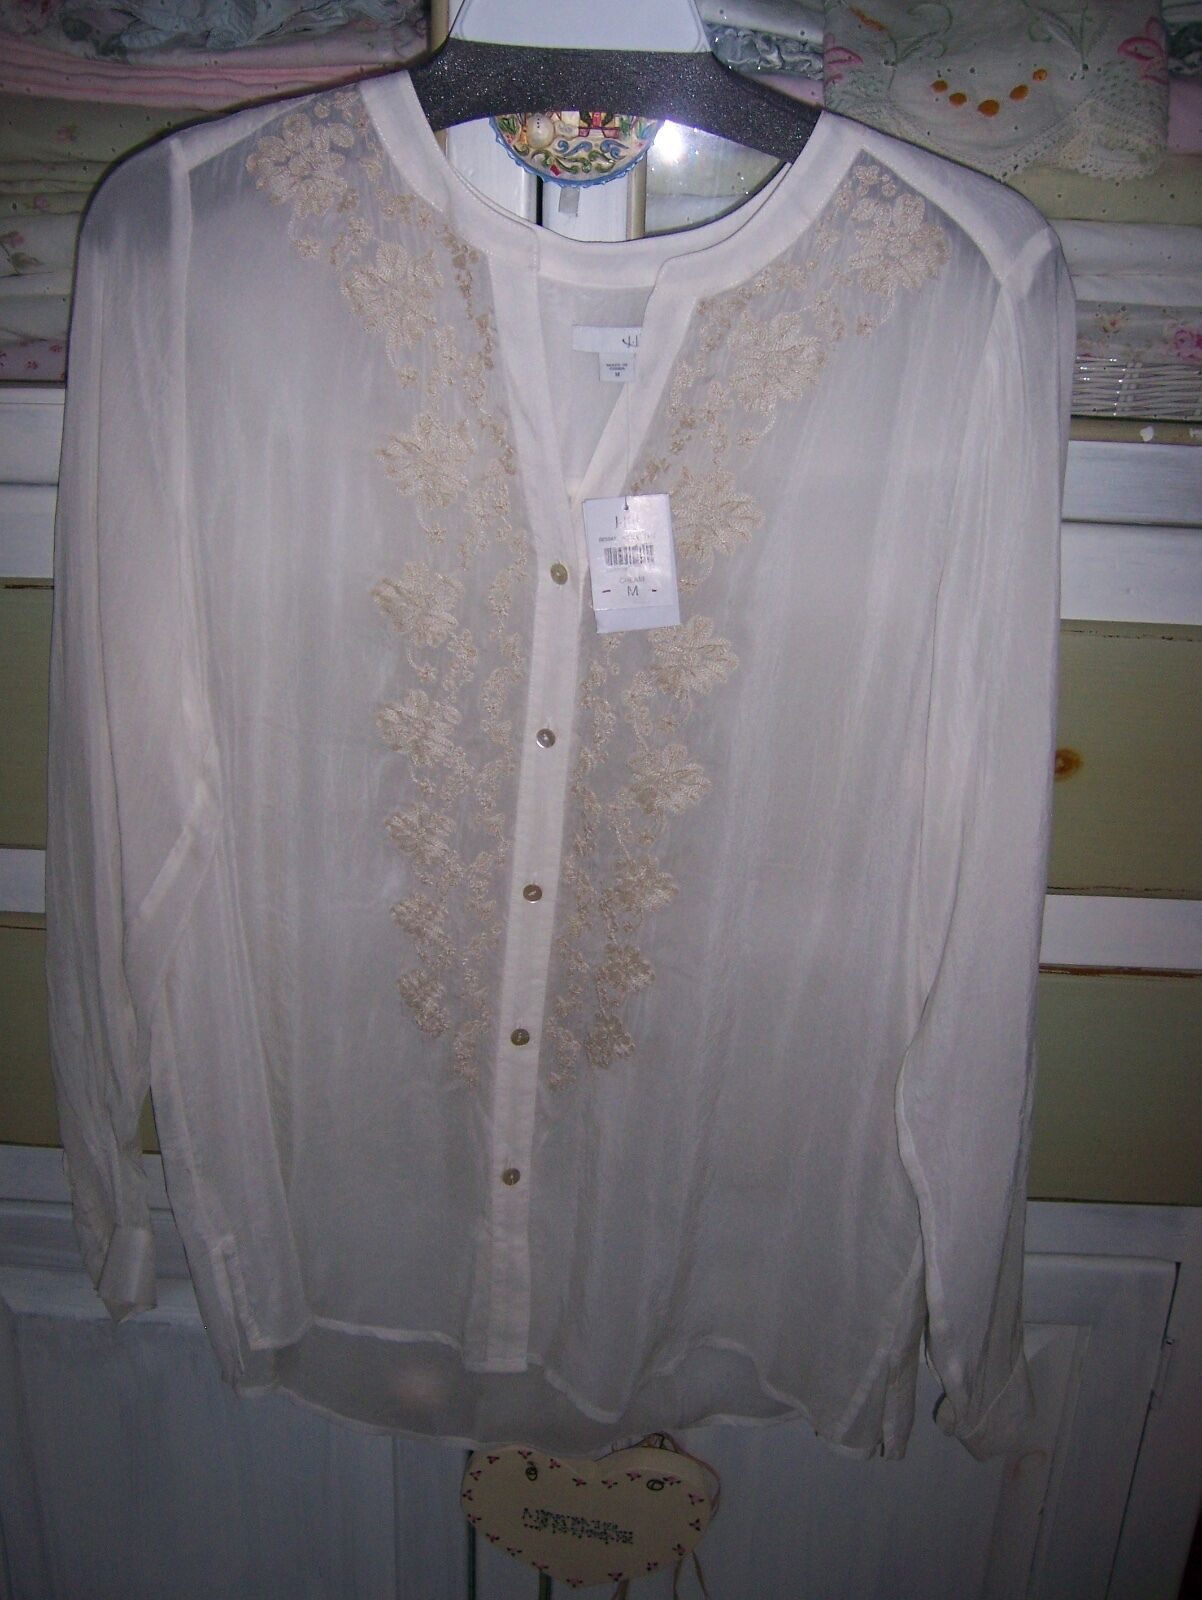 NWT J.Jill CREAM Embroiderot Trellis Gossamer Tunic Top Blouse M